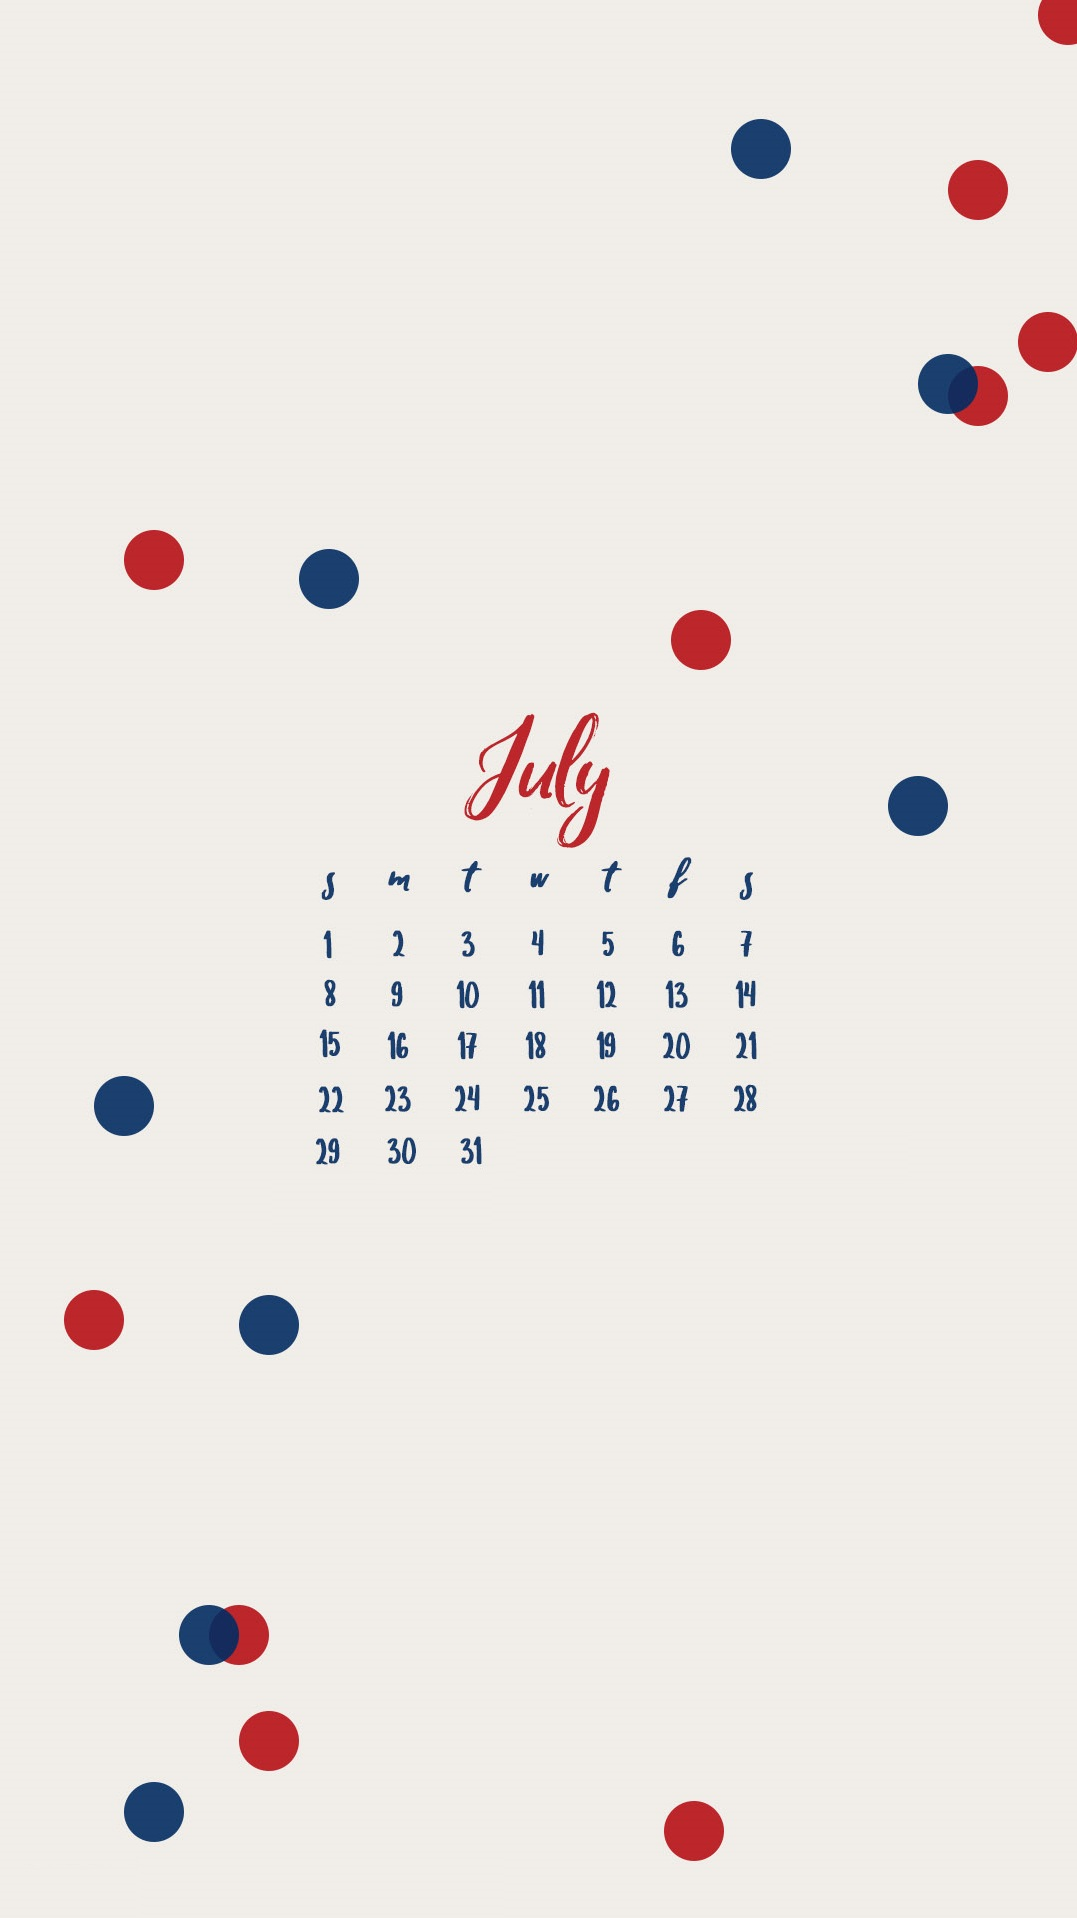 July 2018 iPhone Calendar Design